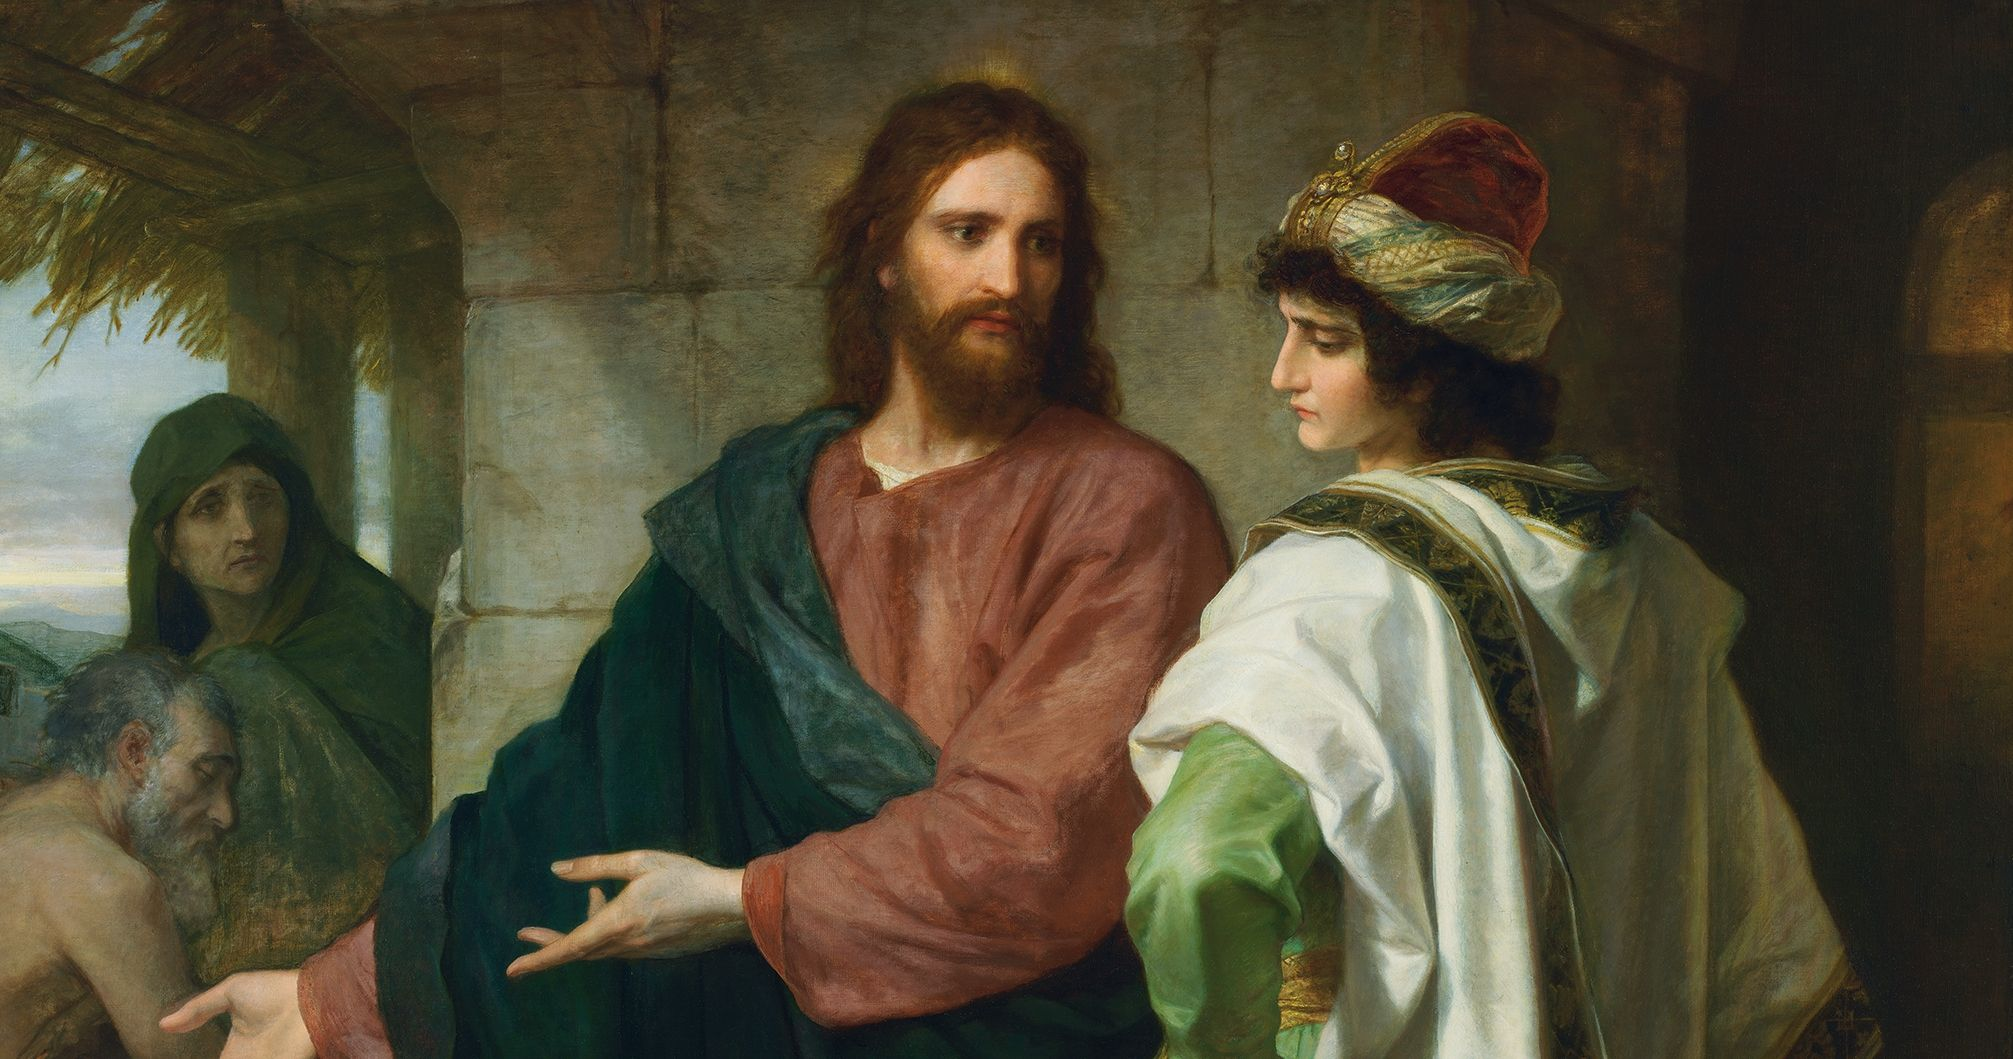 Christ and the Rich Young Ruler, by Heinrich Hofmann. Image via Church of Jesus Christ.